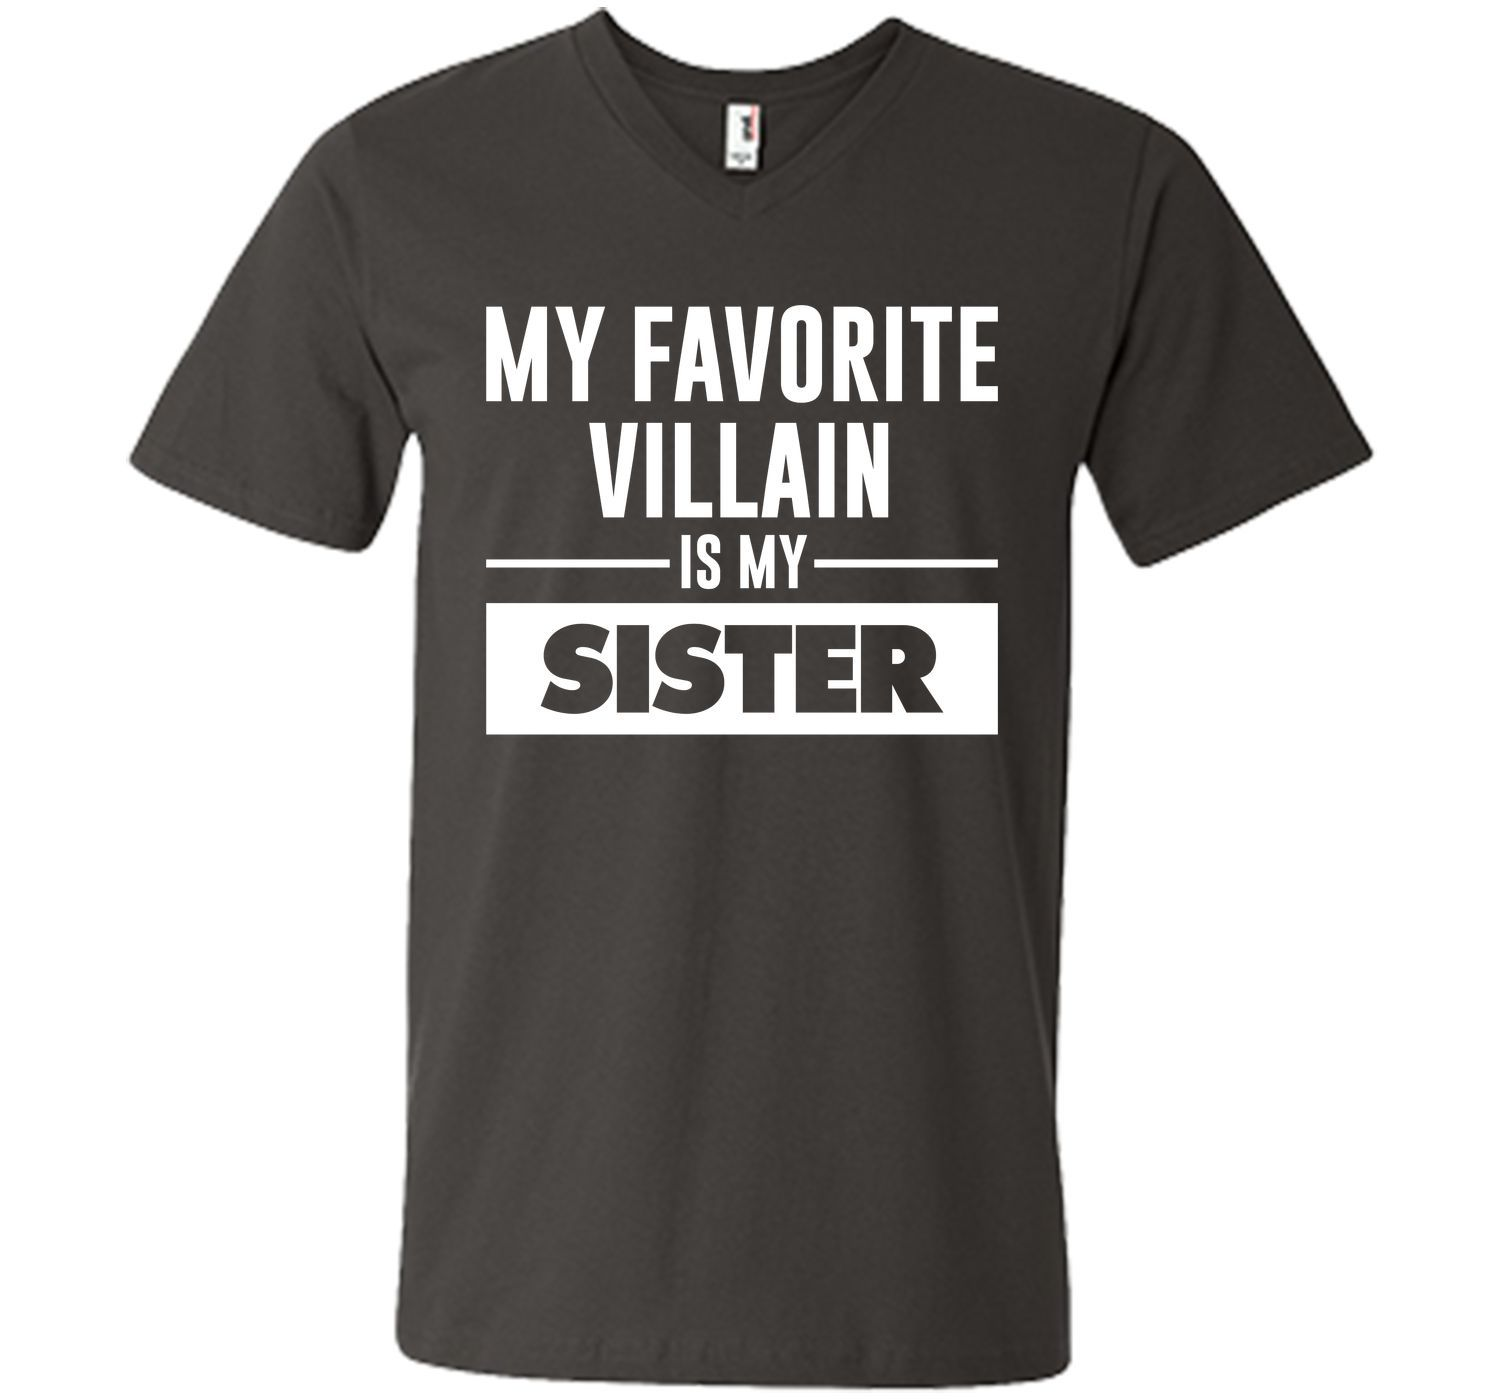 148e6eb5 My Favorite Villain is My Sister Funny Graphic T-shirt T-Shirt ...